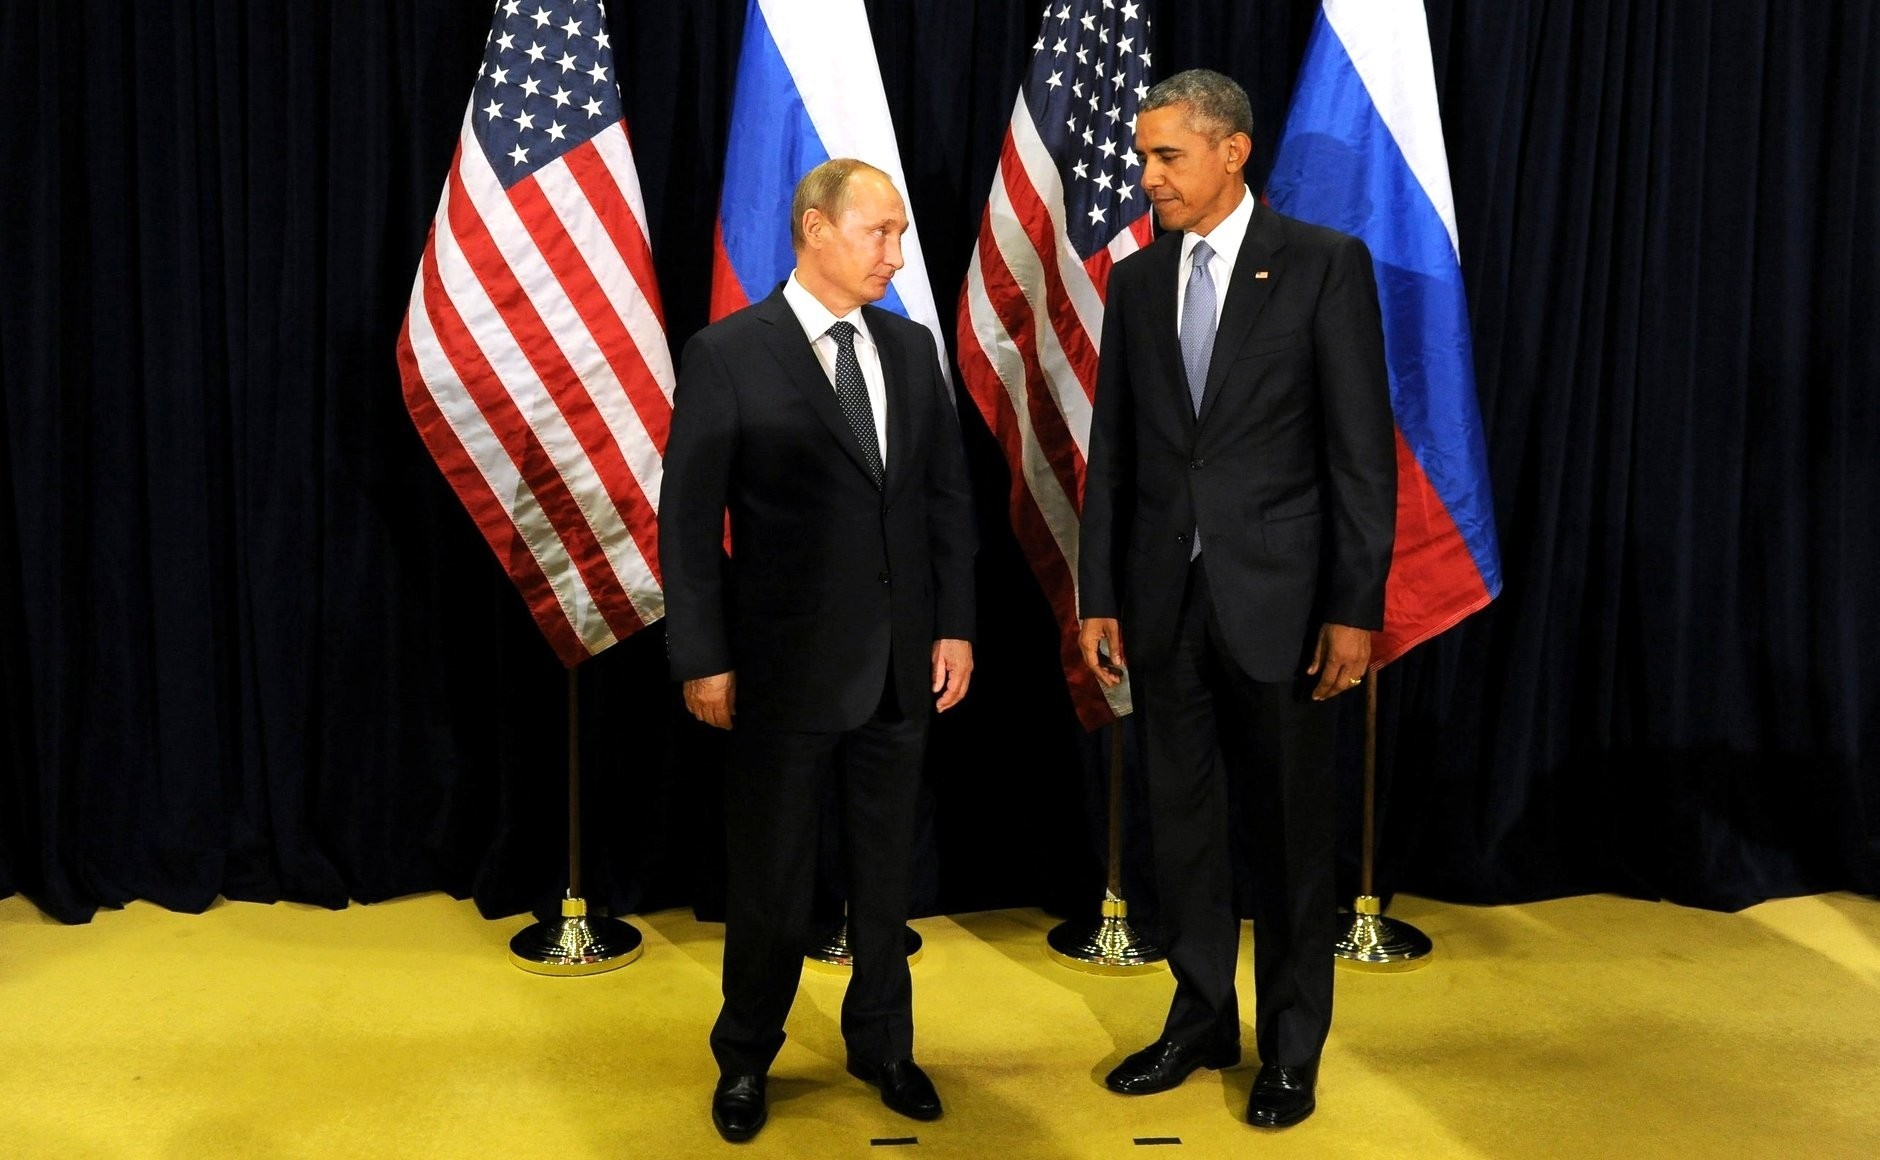 Russia's President Vladimir Putin (L) and then U.S. President Barack Obama met after the 70th session of the United Nations General Assembly in New York on Sept. 28, 2015